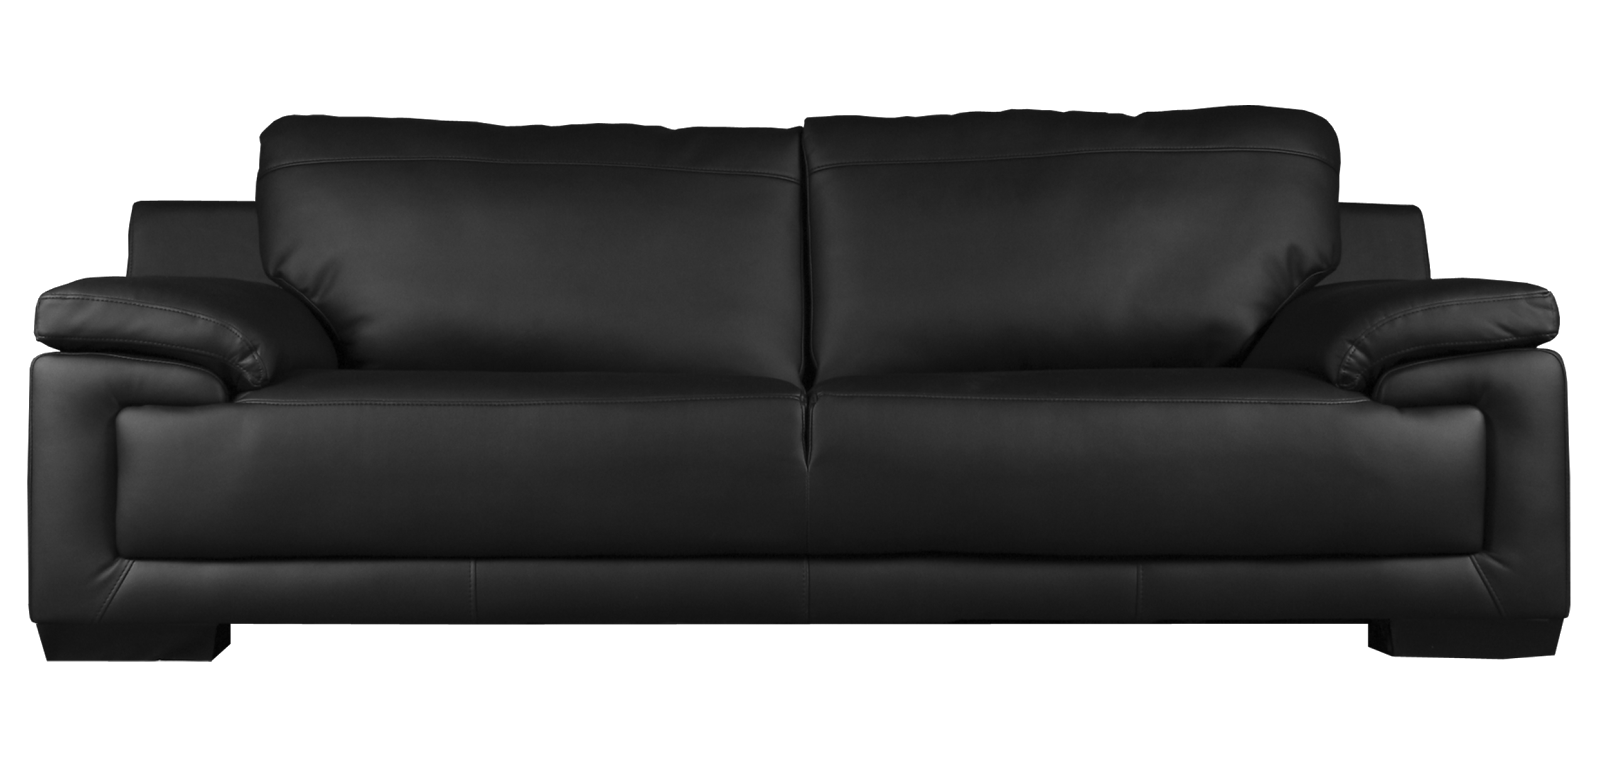 Side drawing couch. Sofa png images free